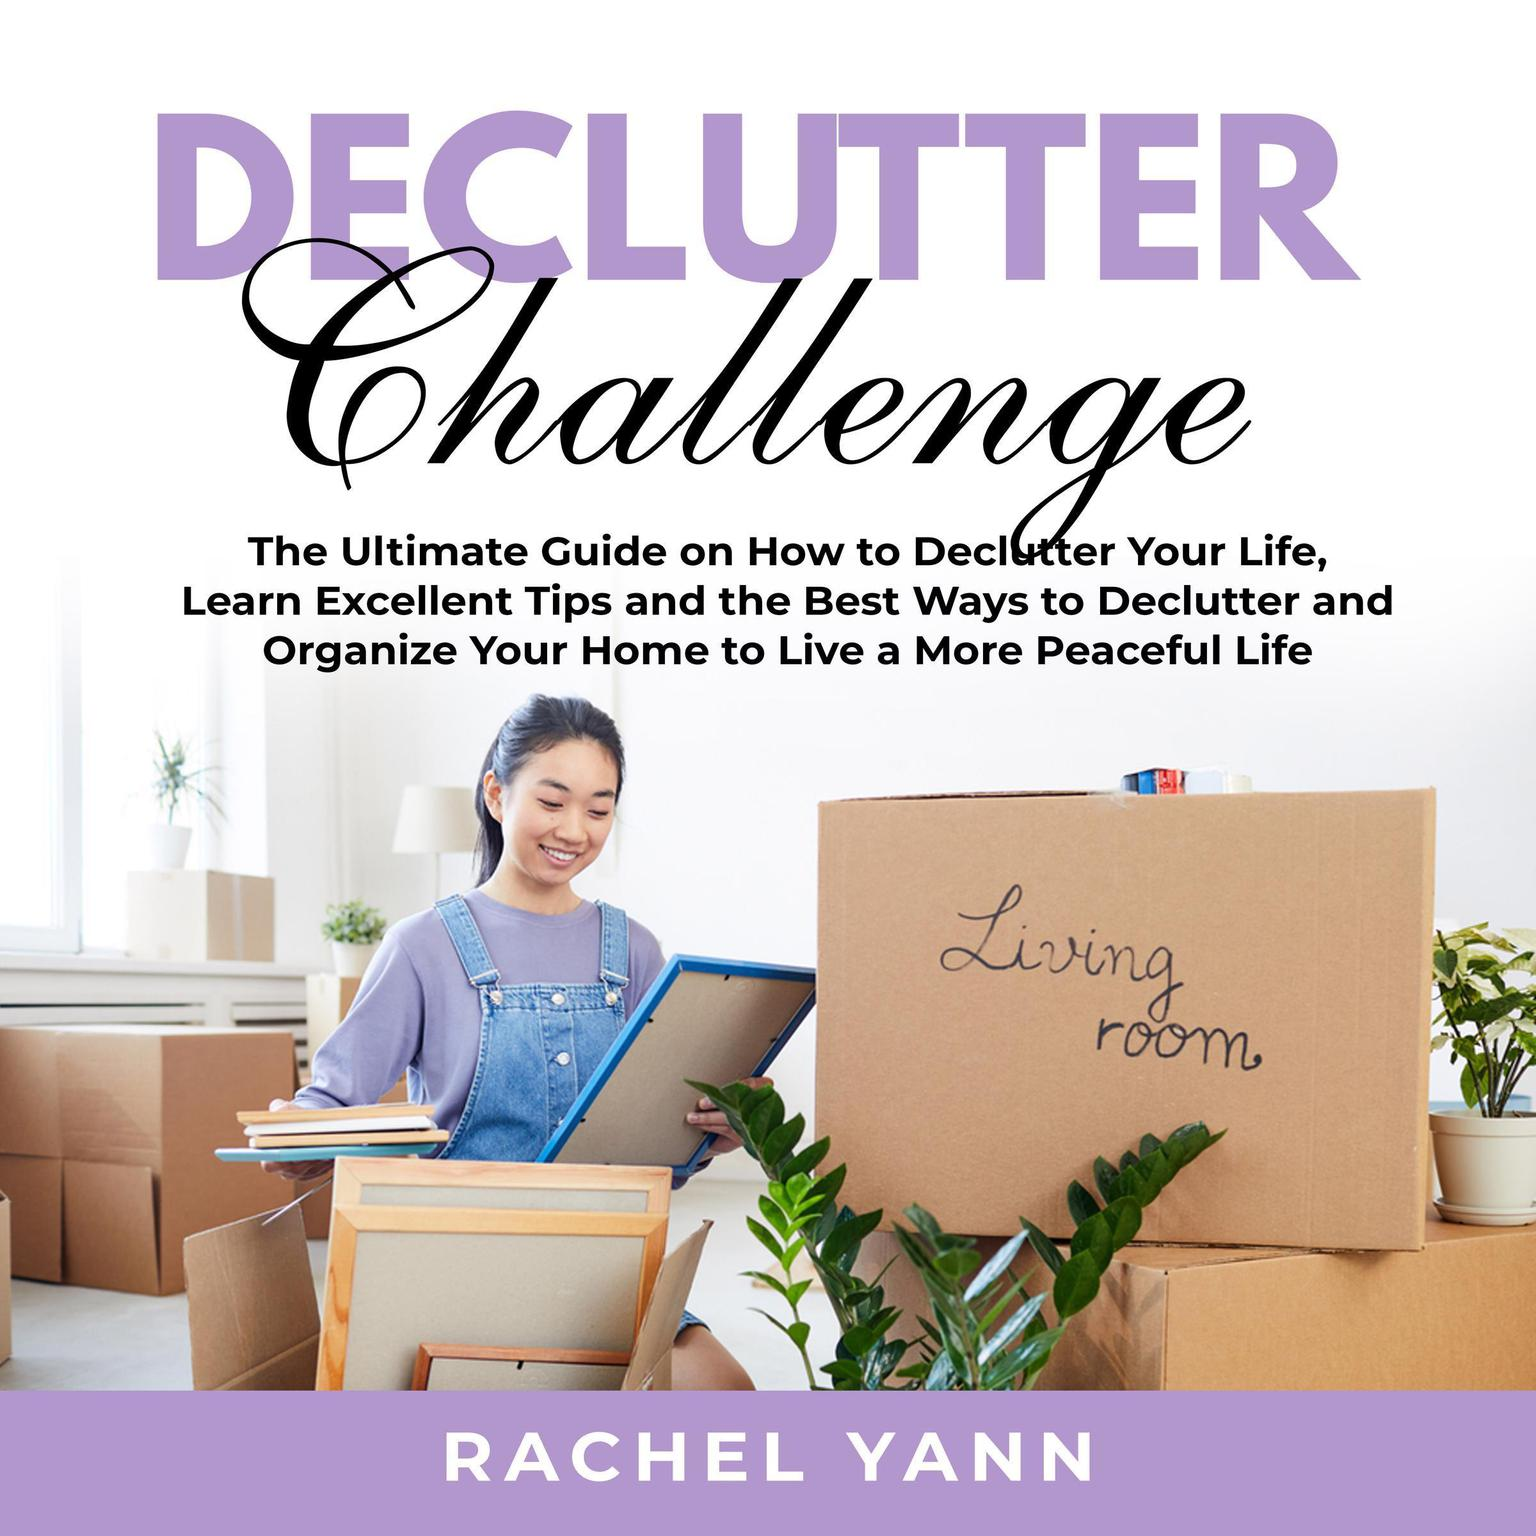 Declutter Challenge:: The Ultimate Guide on How to Declutter Your Life, Learn Excellent Tips and the Best Ways to Declutter and Organize Your Home to Live a More Peaceful Life  Audiobook, by Rachel Yann